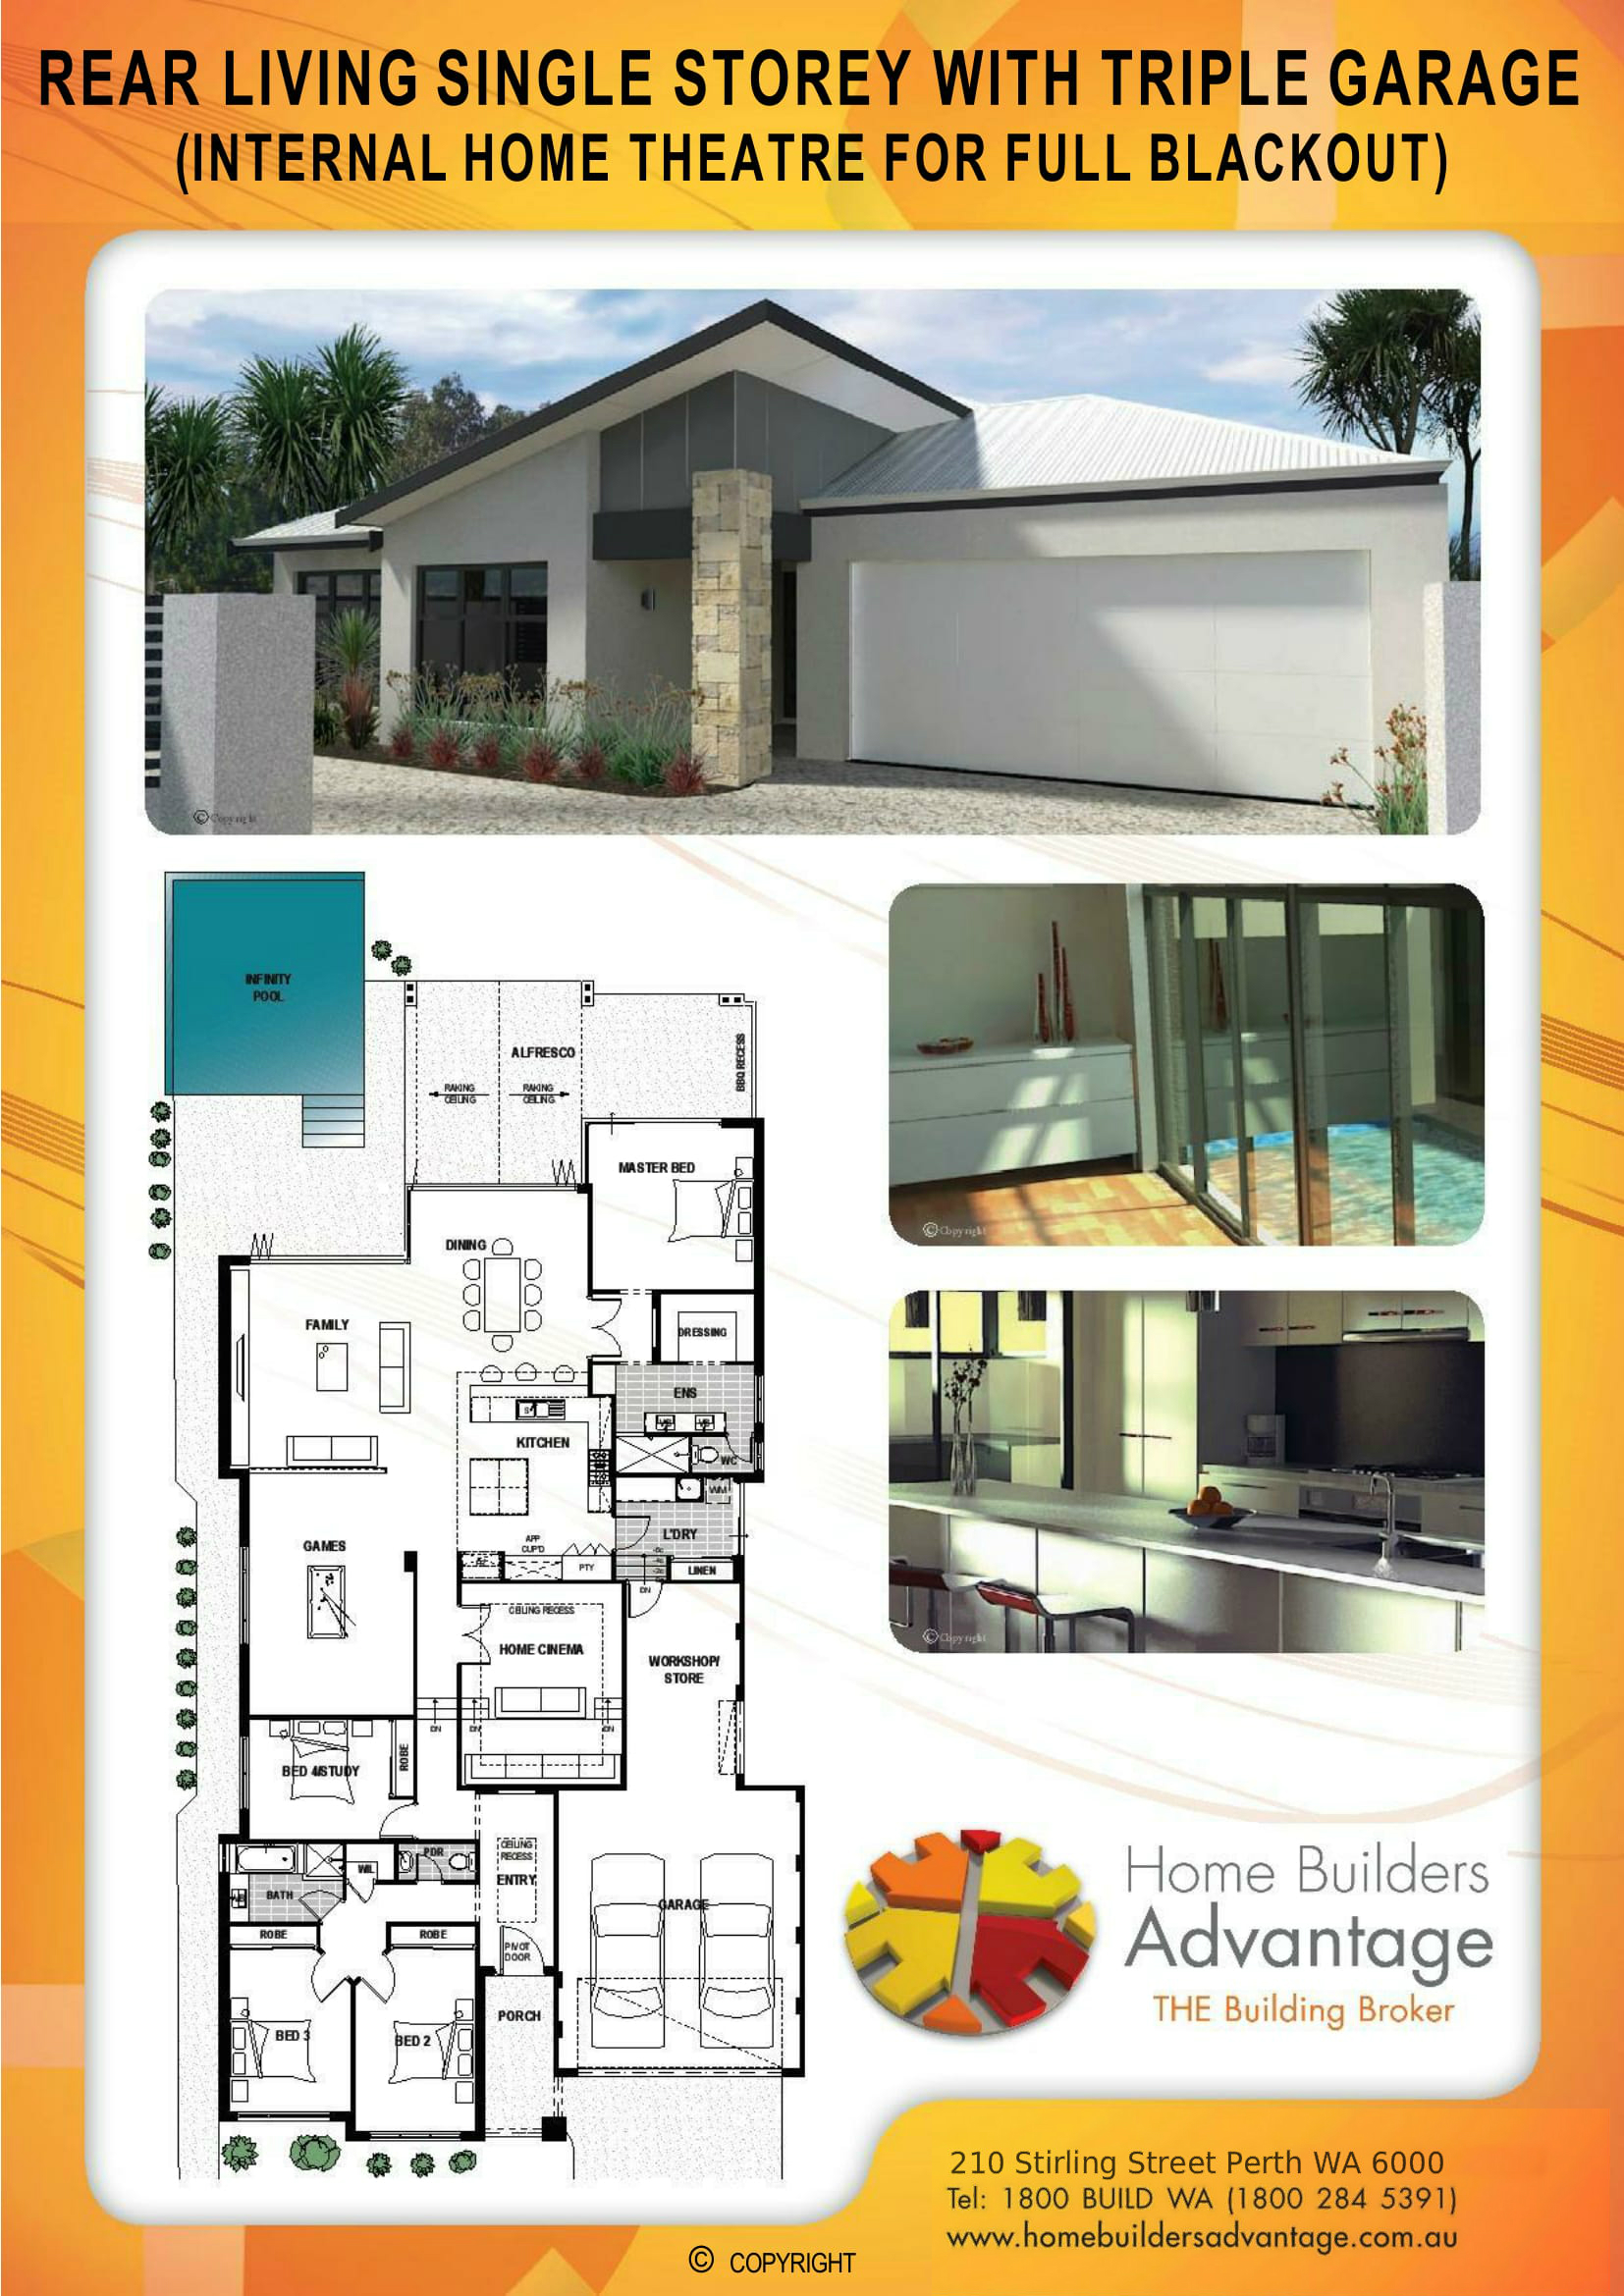 Rear Living Single Storey With Triple Garage (Internal Home Theatre For Full Blackout) Floor Plan Home Builders Advantage Perth The Building Broker